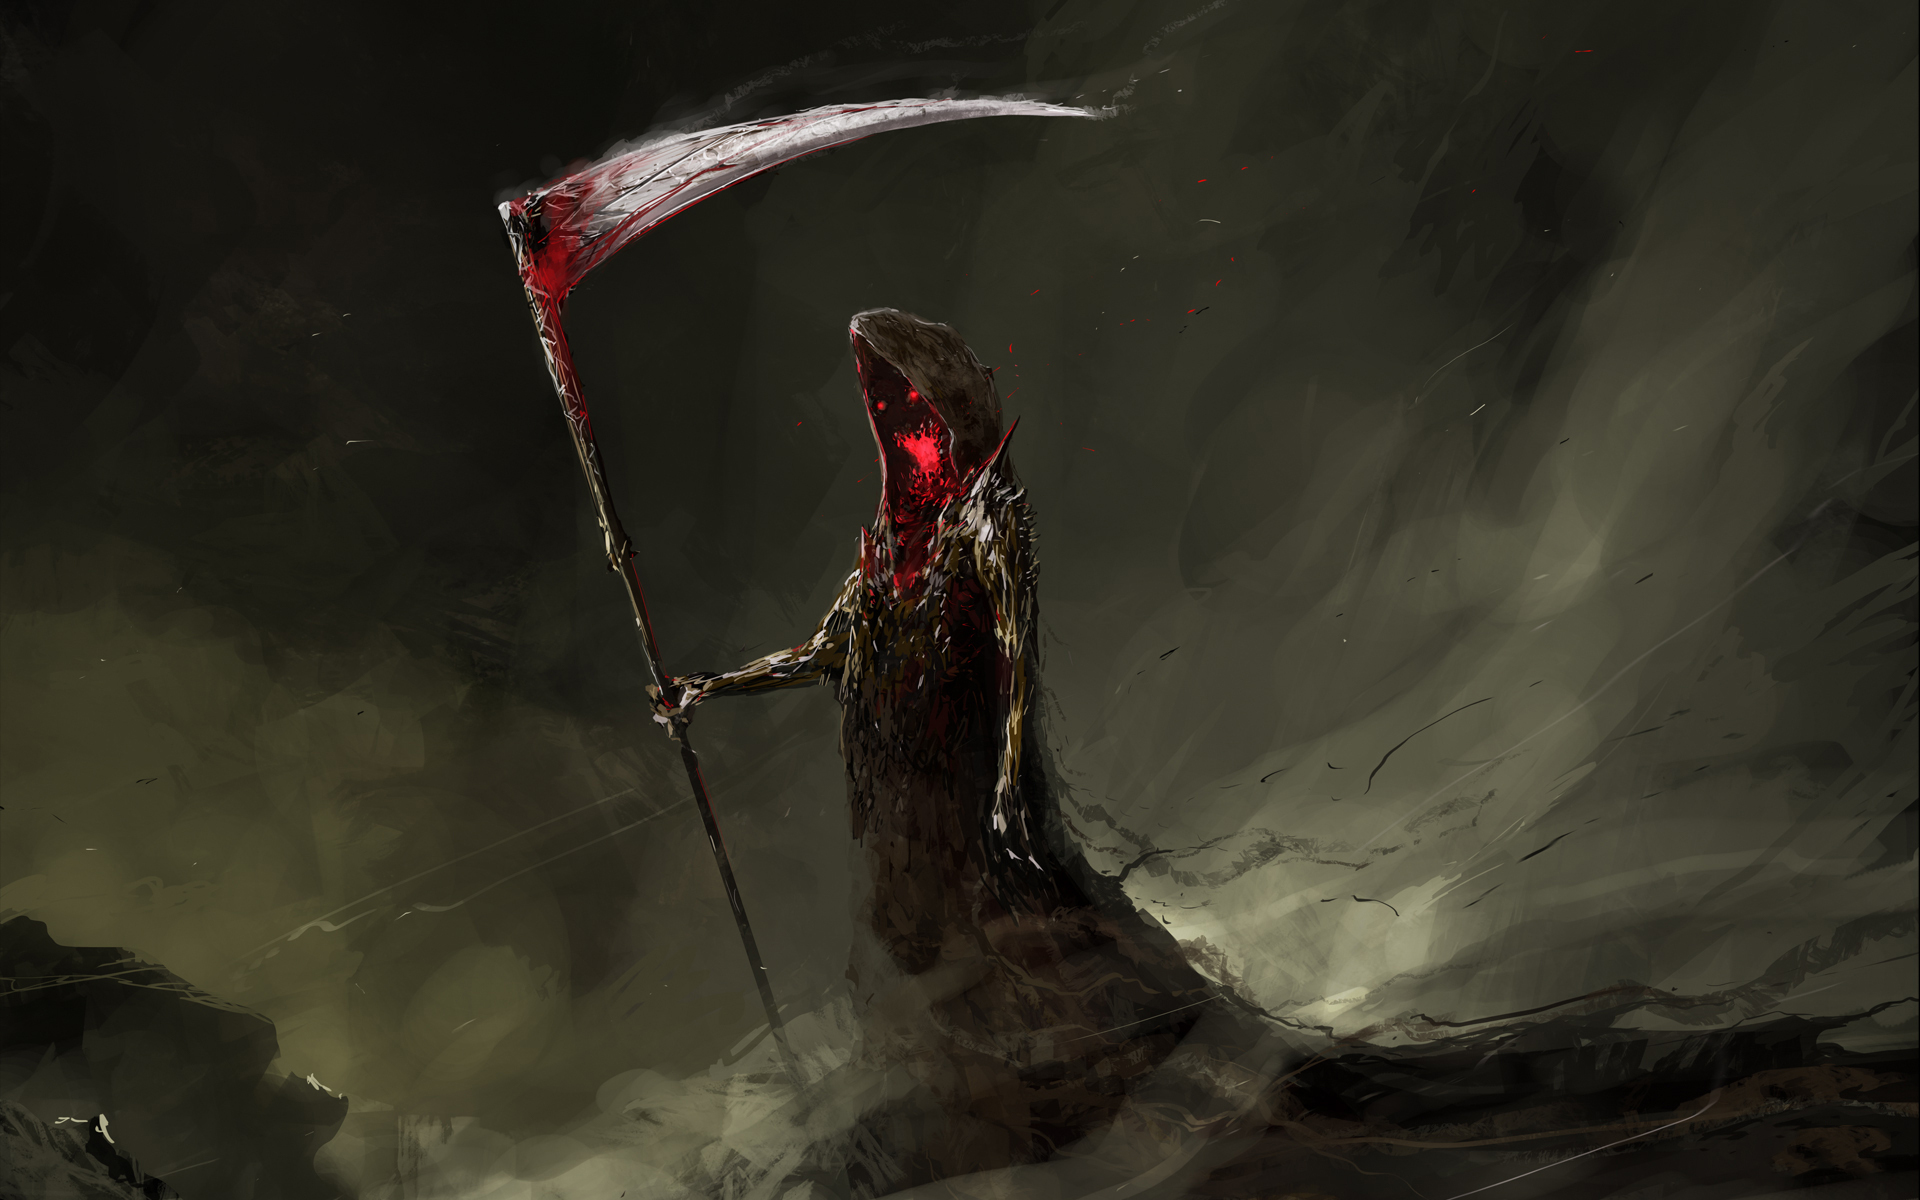 Bloody-Death-Scary-Drawings-Grim-Reaper-Pictures-Photos-Images-wallpaper-wp3803262